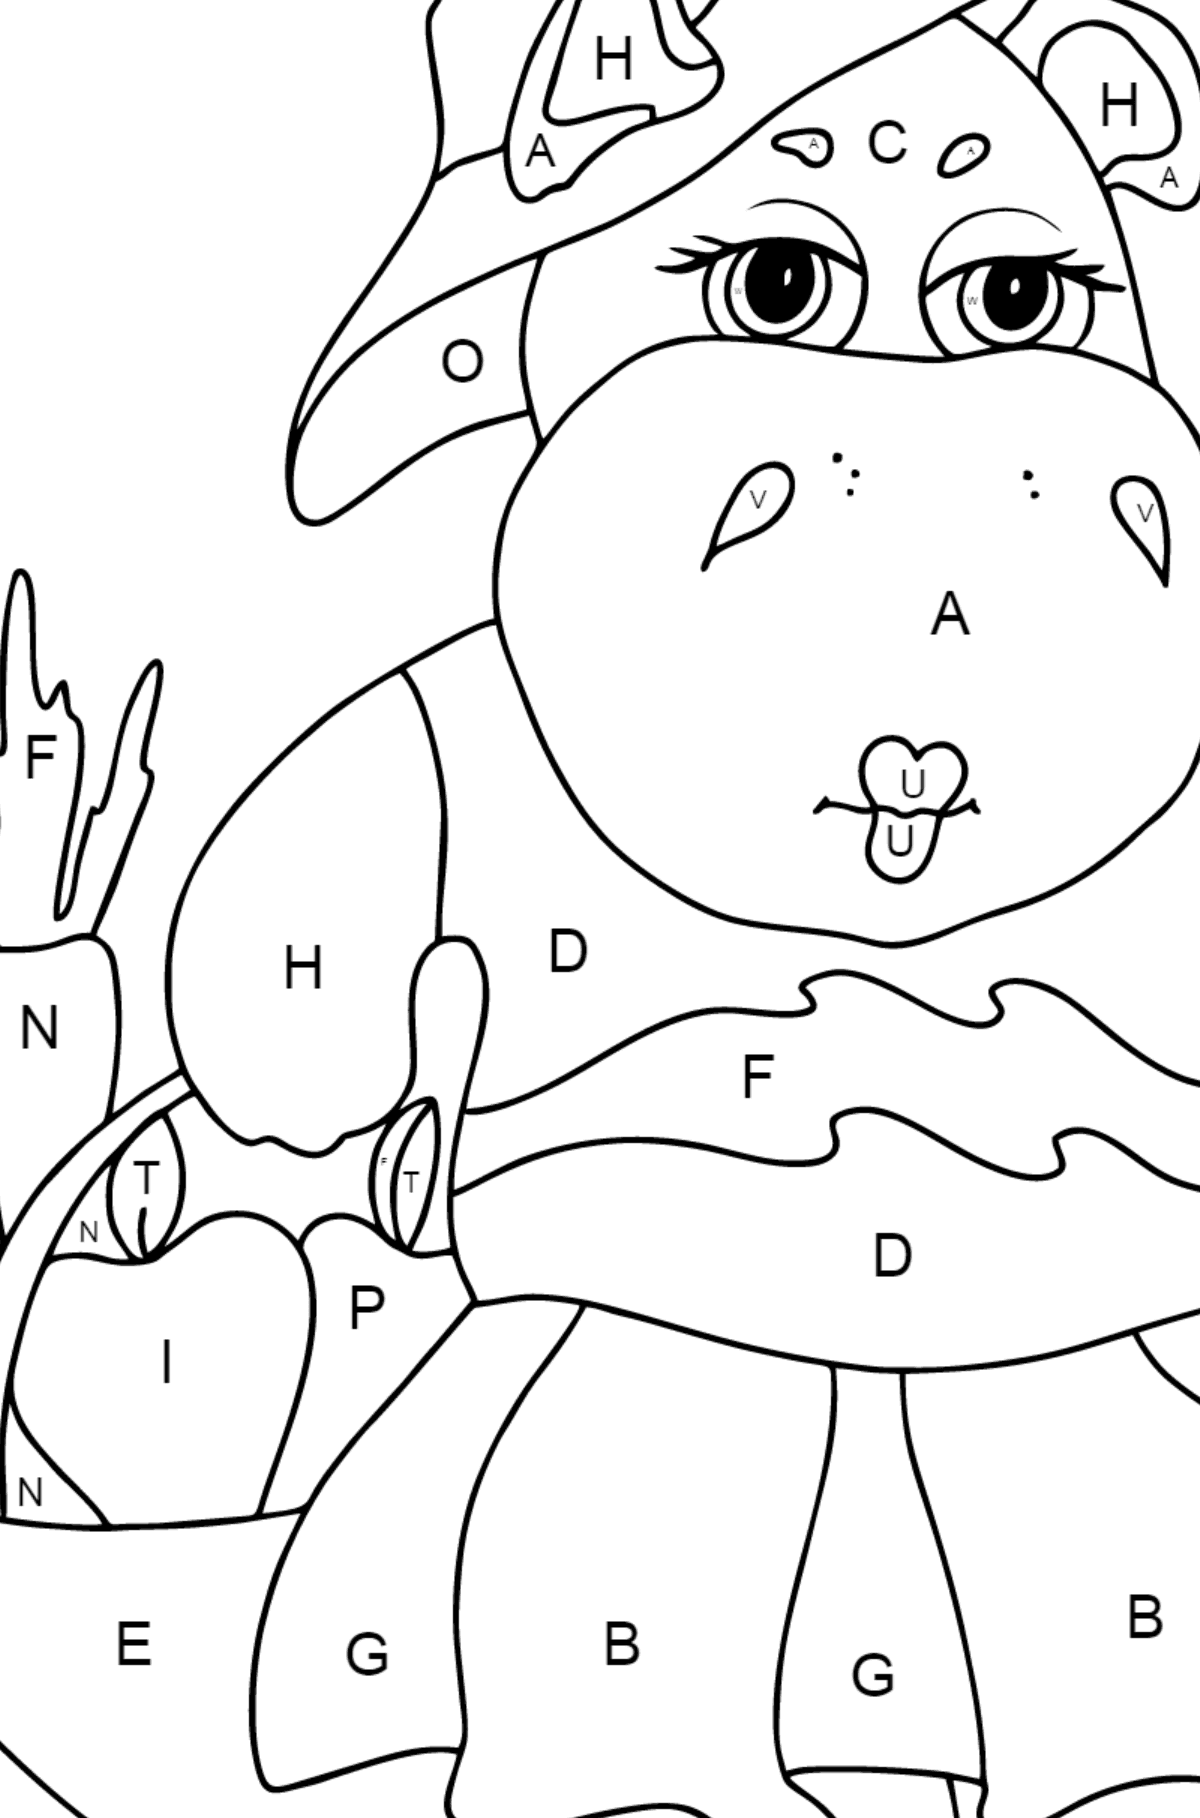 Coloring Page - A Hippo with a Crop Basket for Kids  - Color by Letters